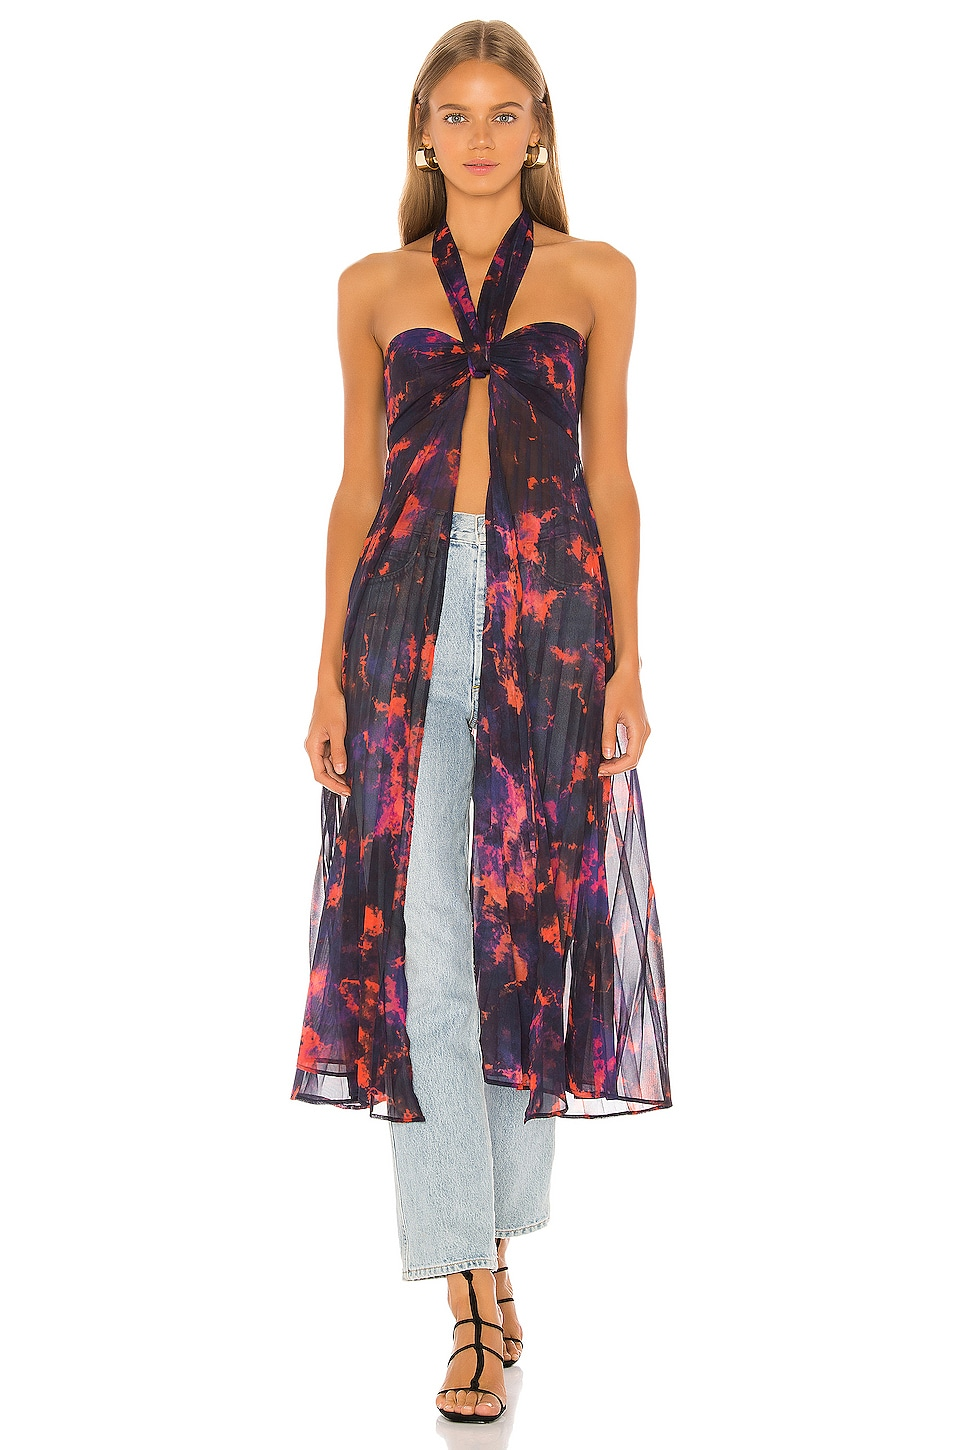 House of Harlow 1960 X REVOLVE Tammy Maxi Top in Purple Tie Dye